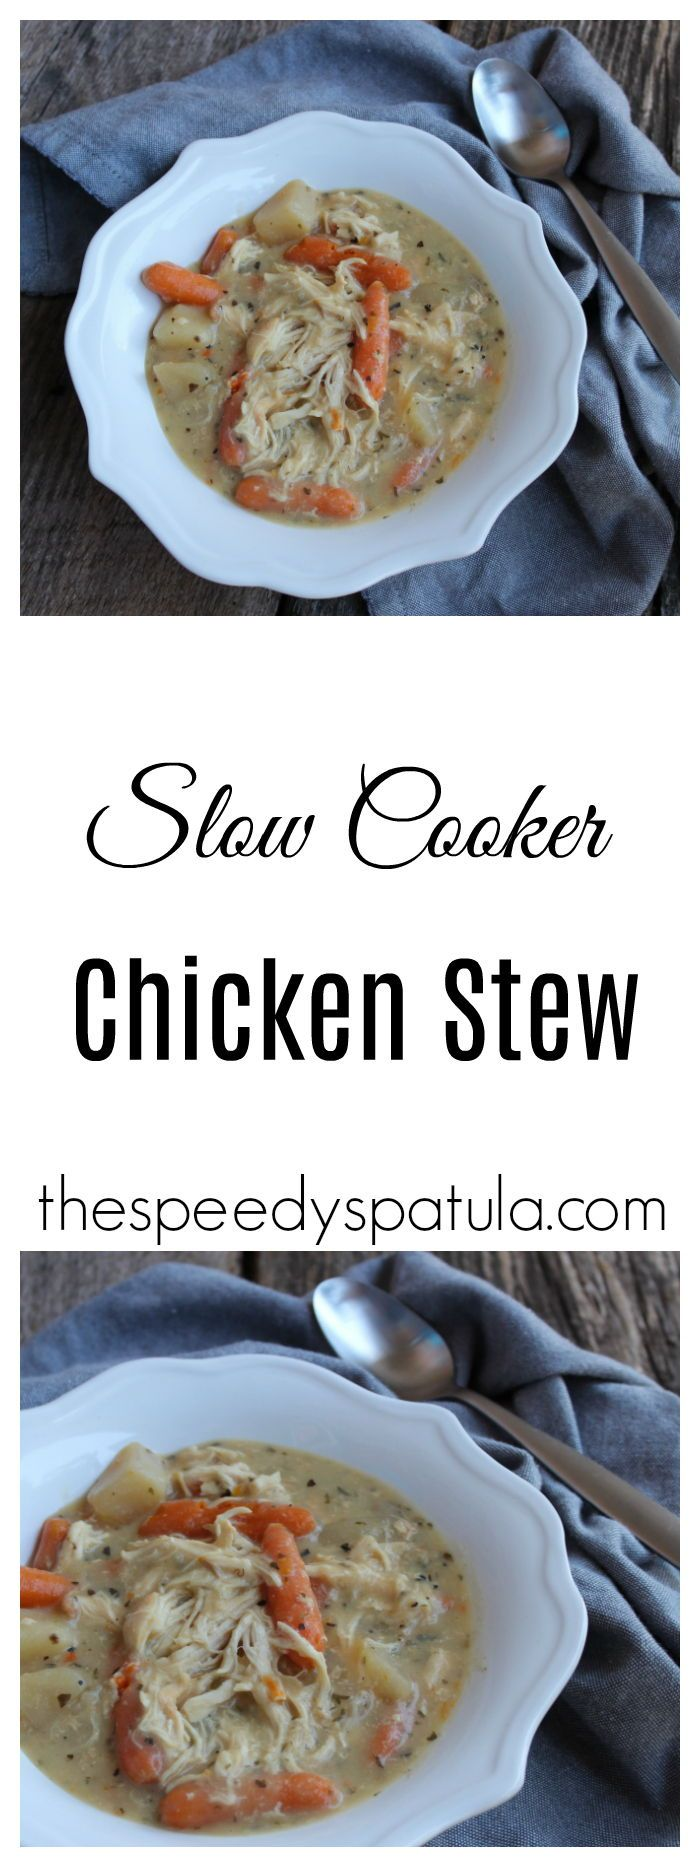 Delicious and hearty Chicken Stew, all made in the slow cooker! #thespeedyspatula #slowcooker #crockpot #slowcookerrecipes #crockpotrecipes #soup #stew #weightwatchers #weightwatchersrecipes